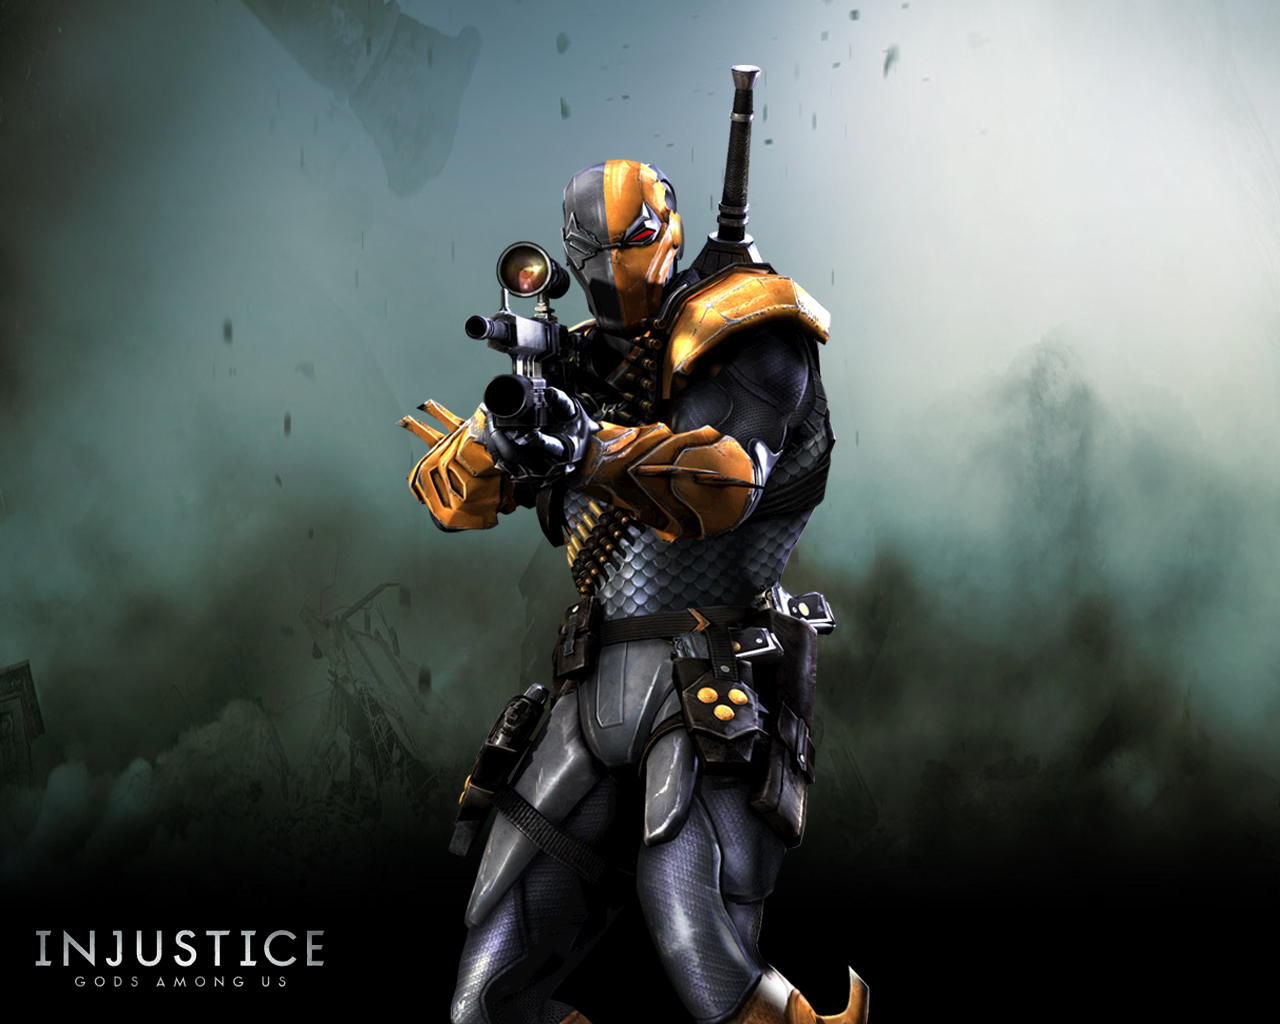 Game Art X Injustice Gods Among Us Wallpapers Deathstroke Injustice Deathstroke The Terminator